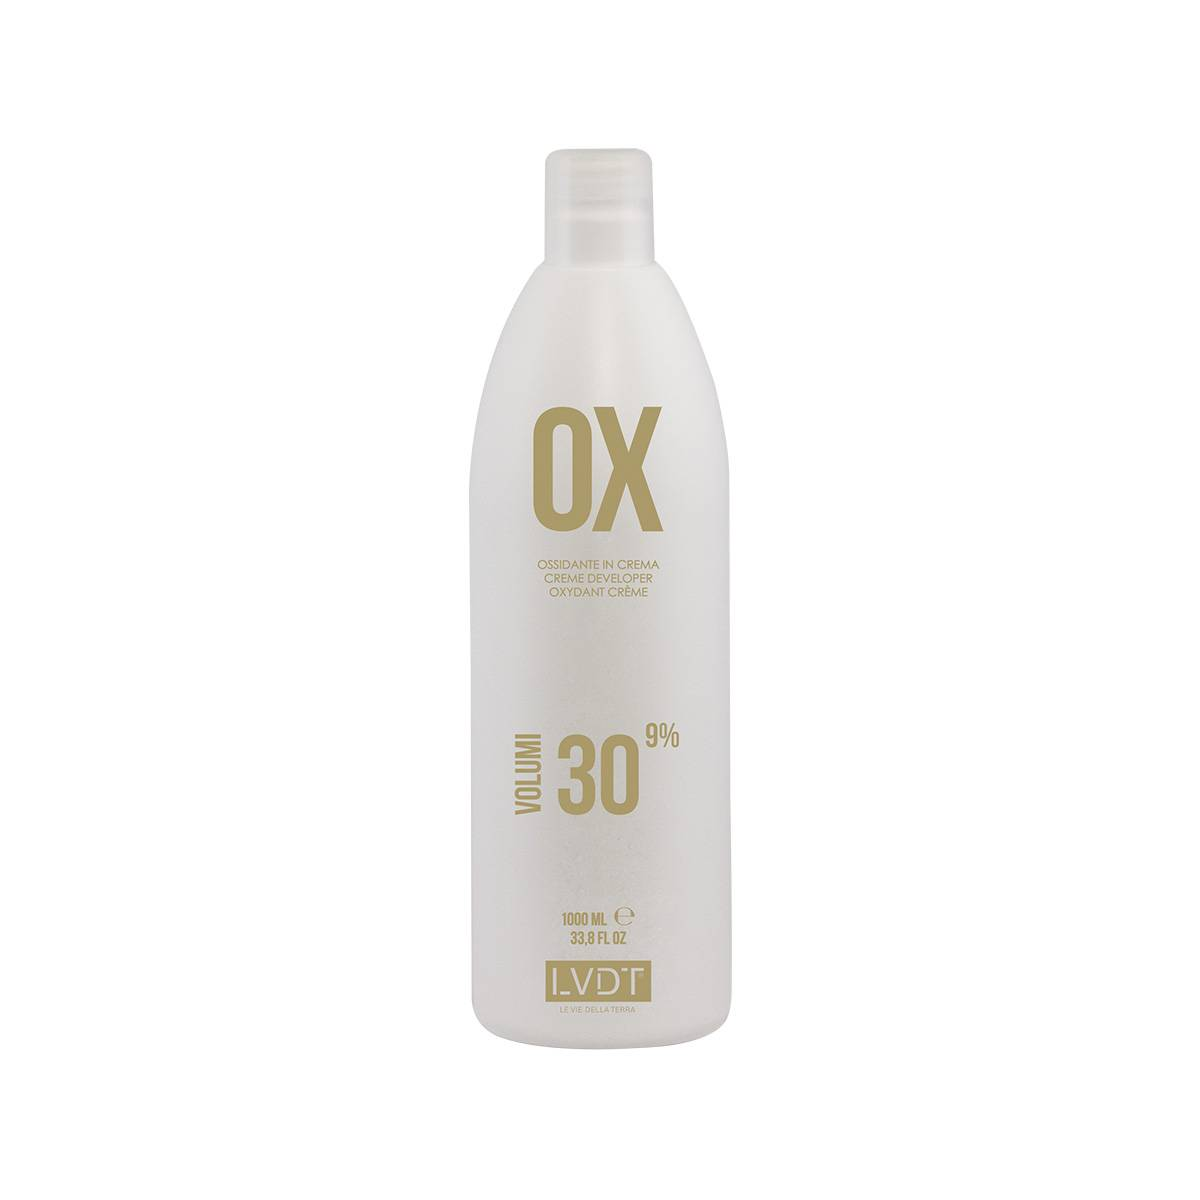 Lvdt Ossidante In Crema 30 Vol 1000 Ml